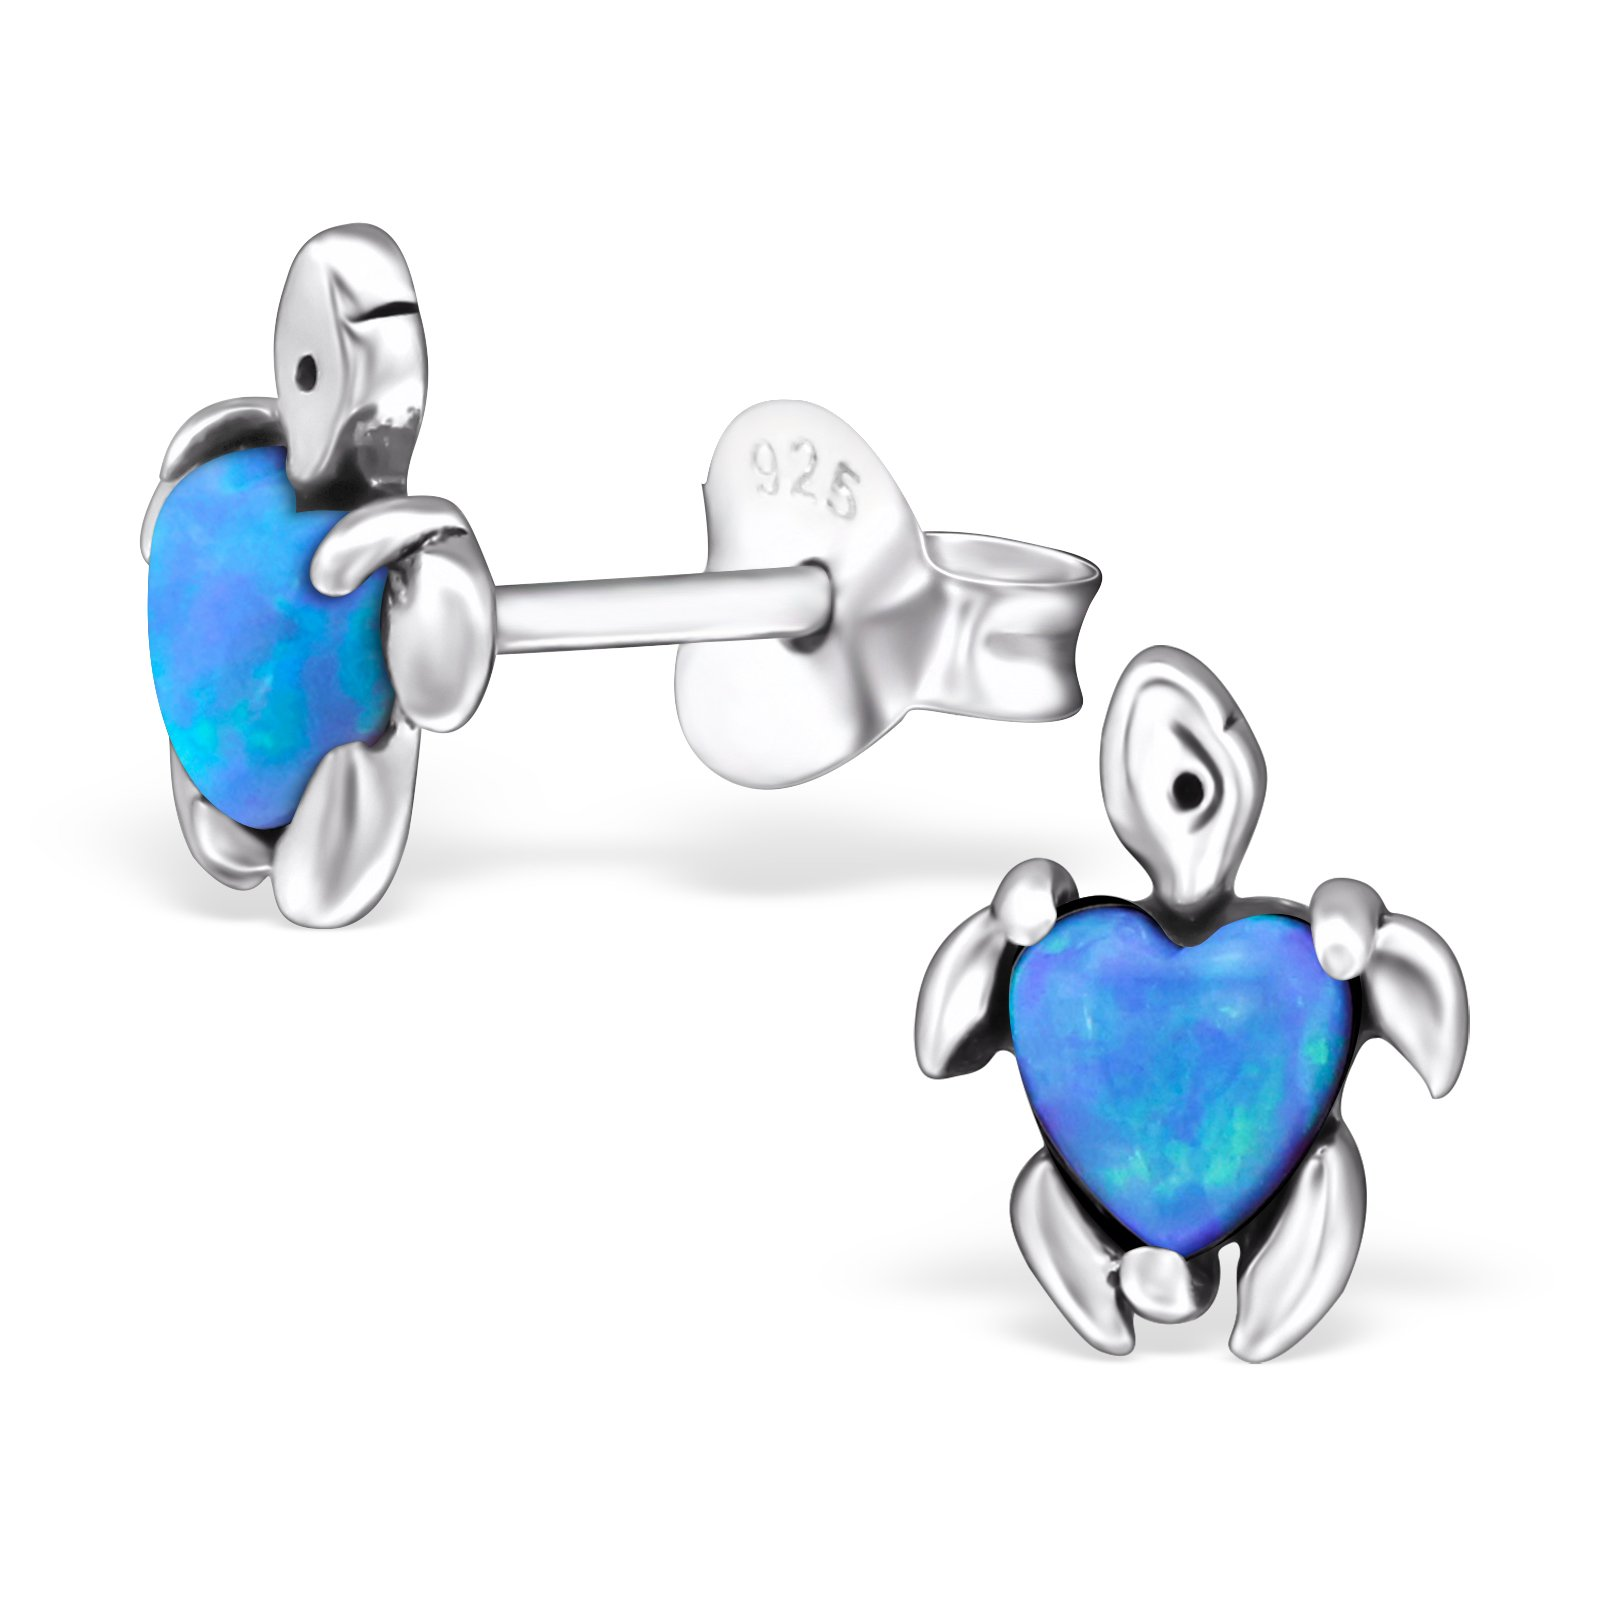 Hypoallergenic Turtle Stud Earrings for Girls (Nickel Free and Safe for Sensitive Ears) - Azure